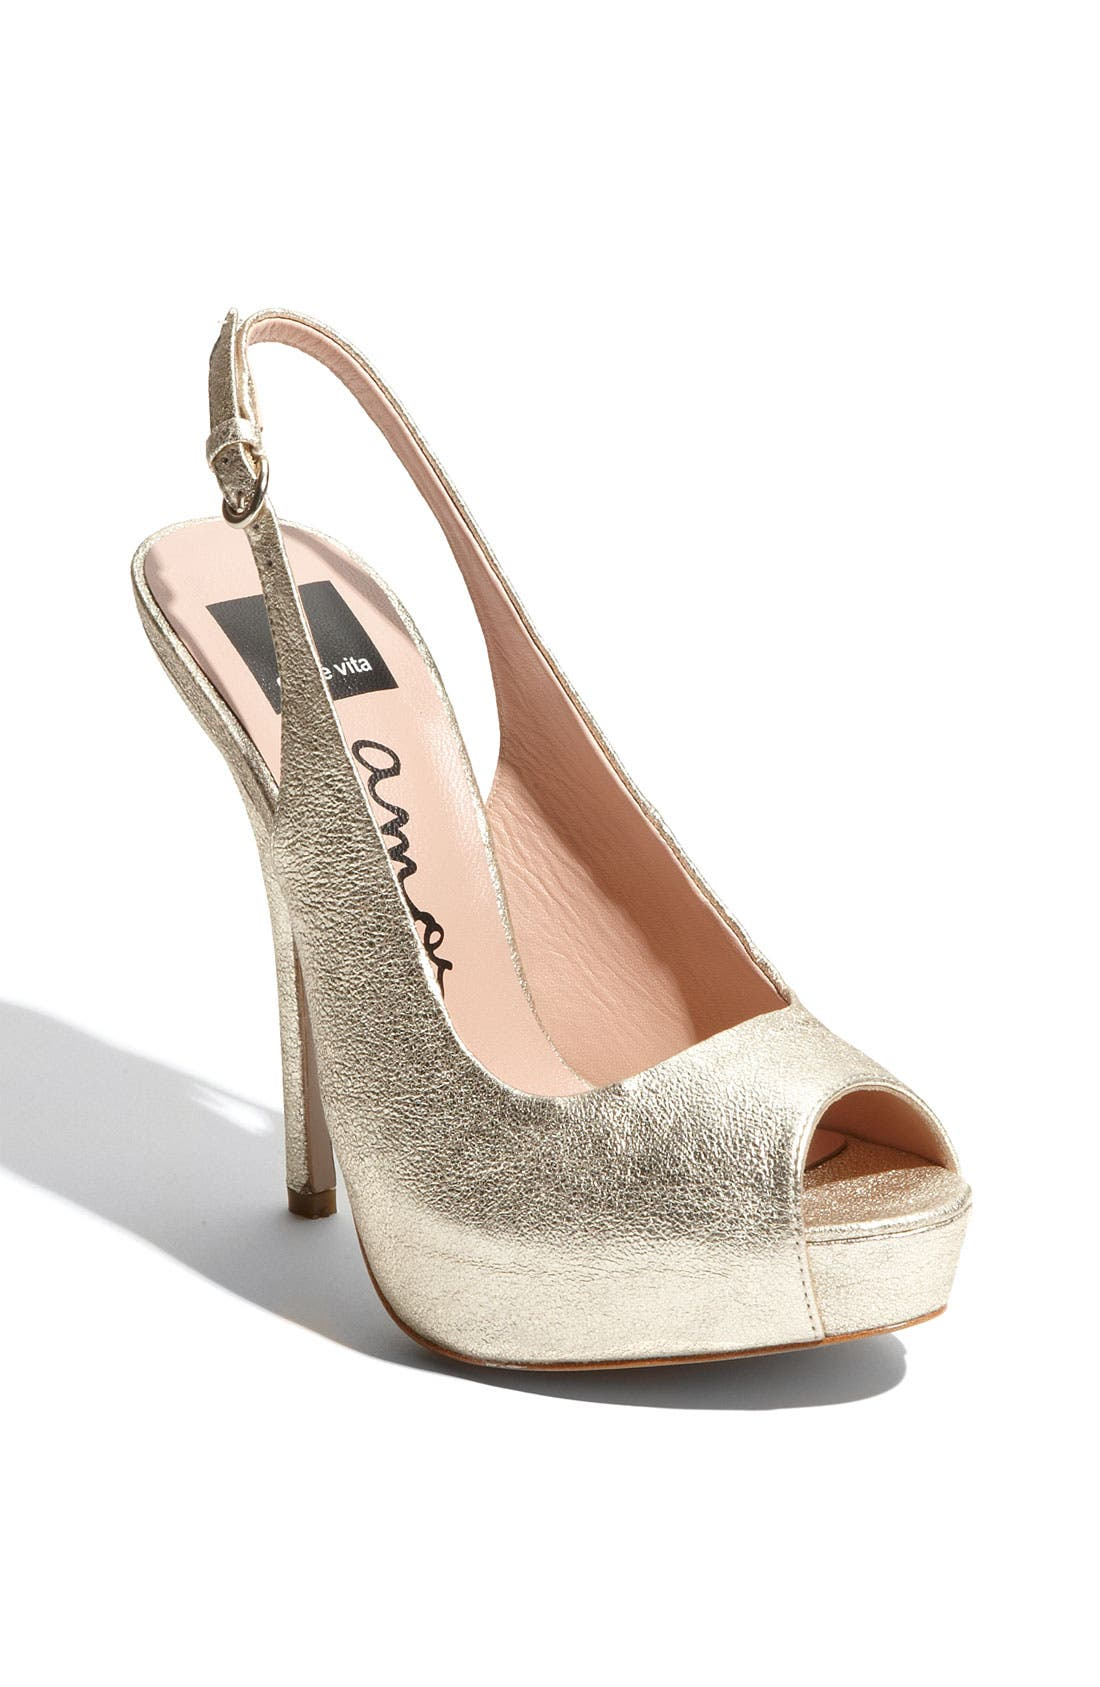 DOLCE VITA 'Vivo' Slingback Pump, Main, color, 045